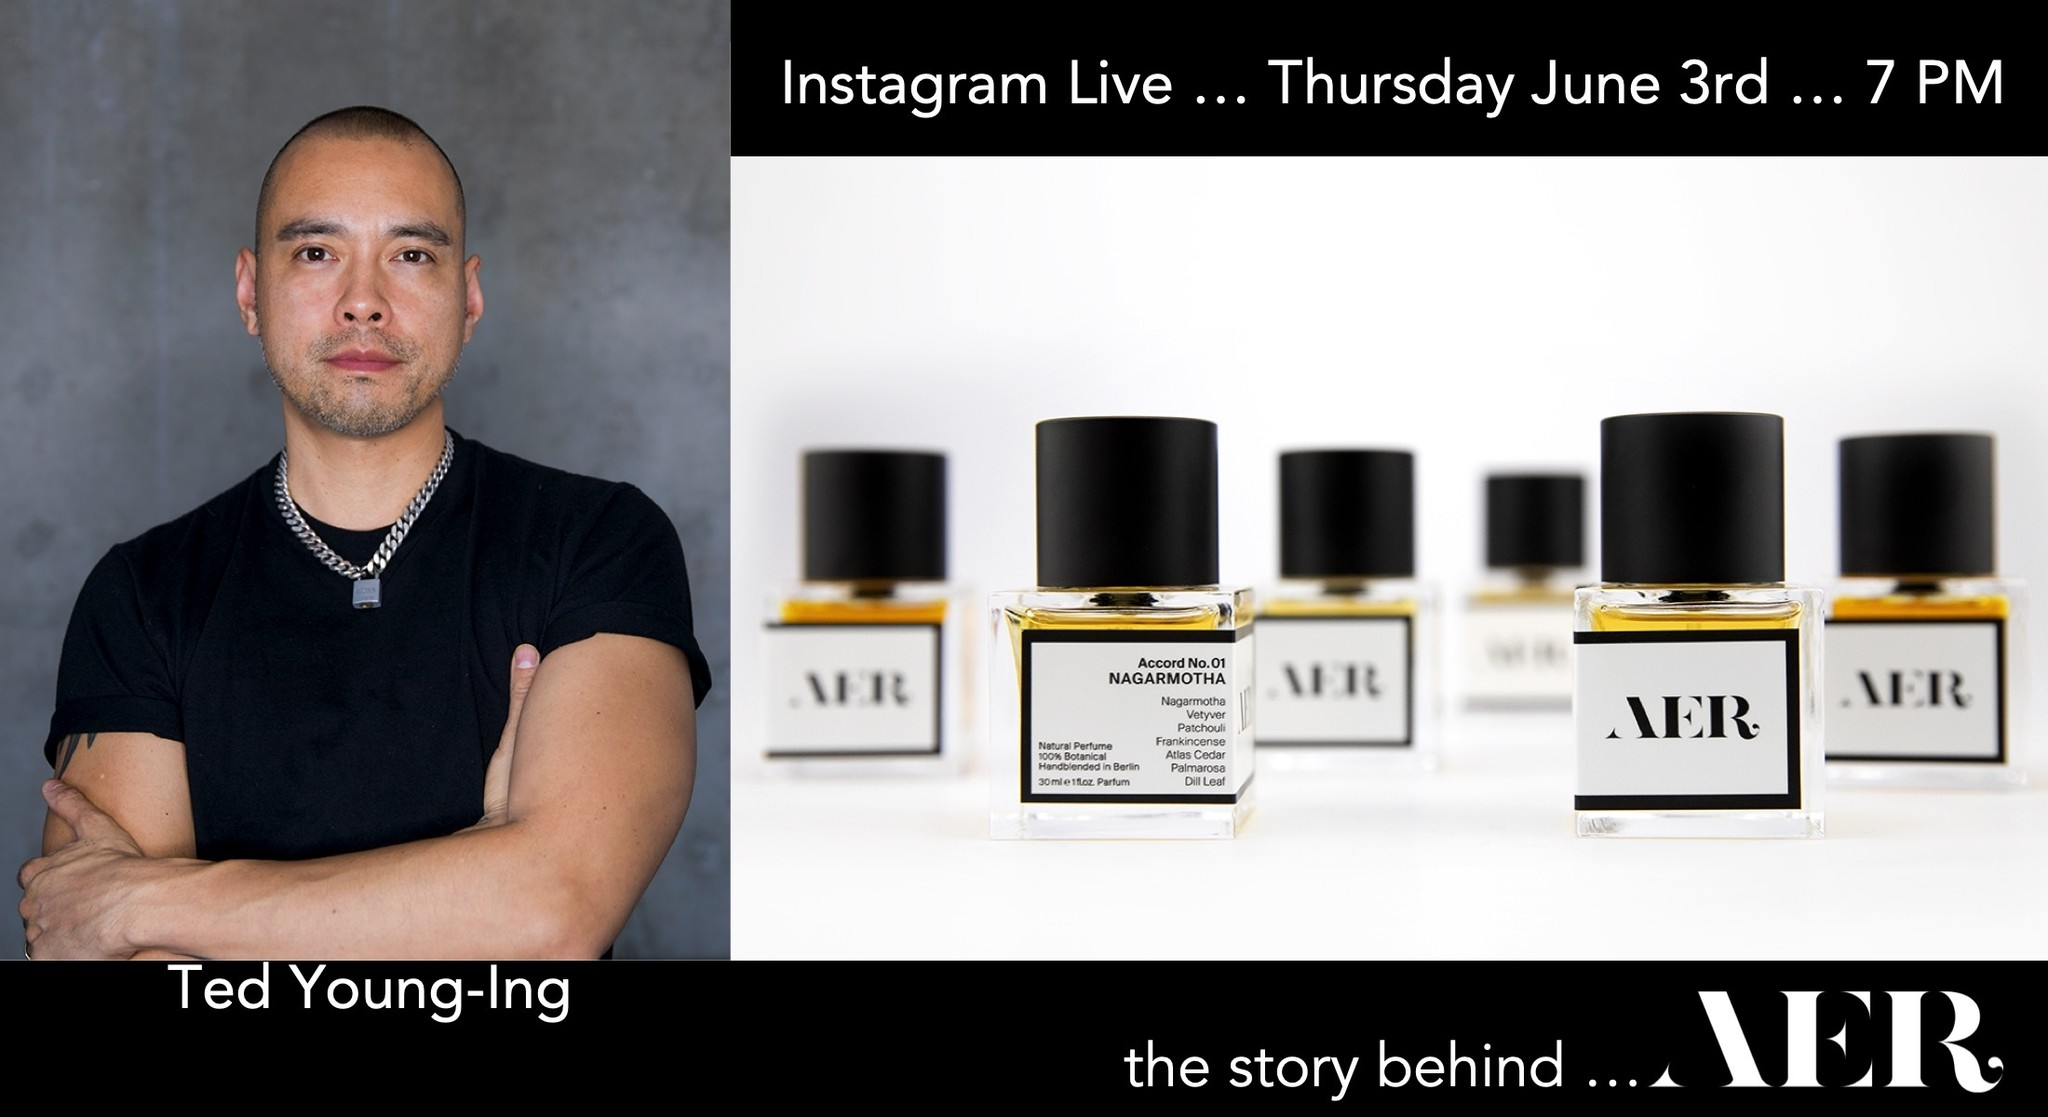 the story behind ... AER